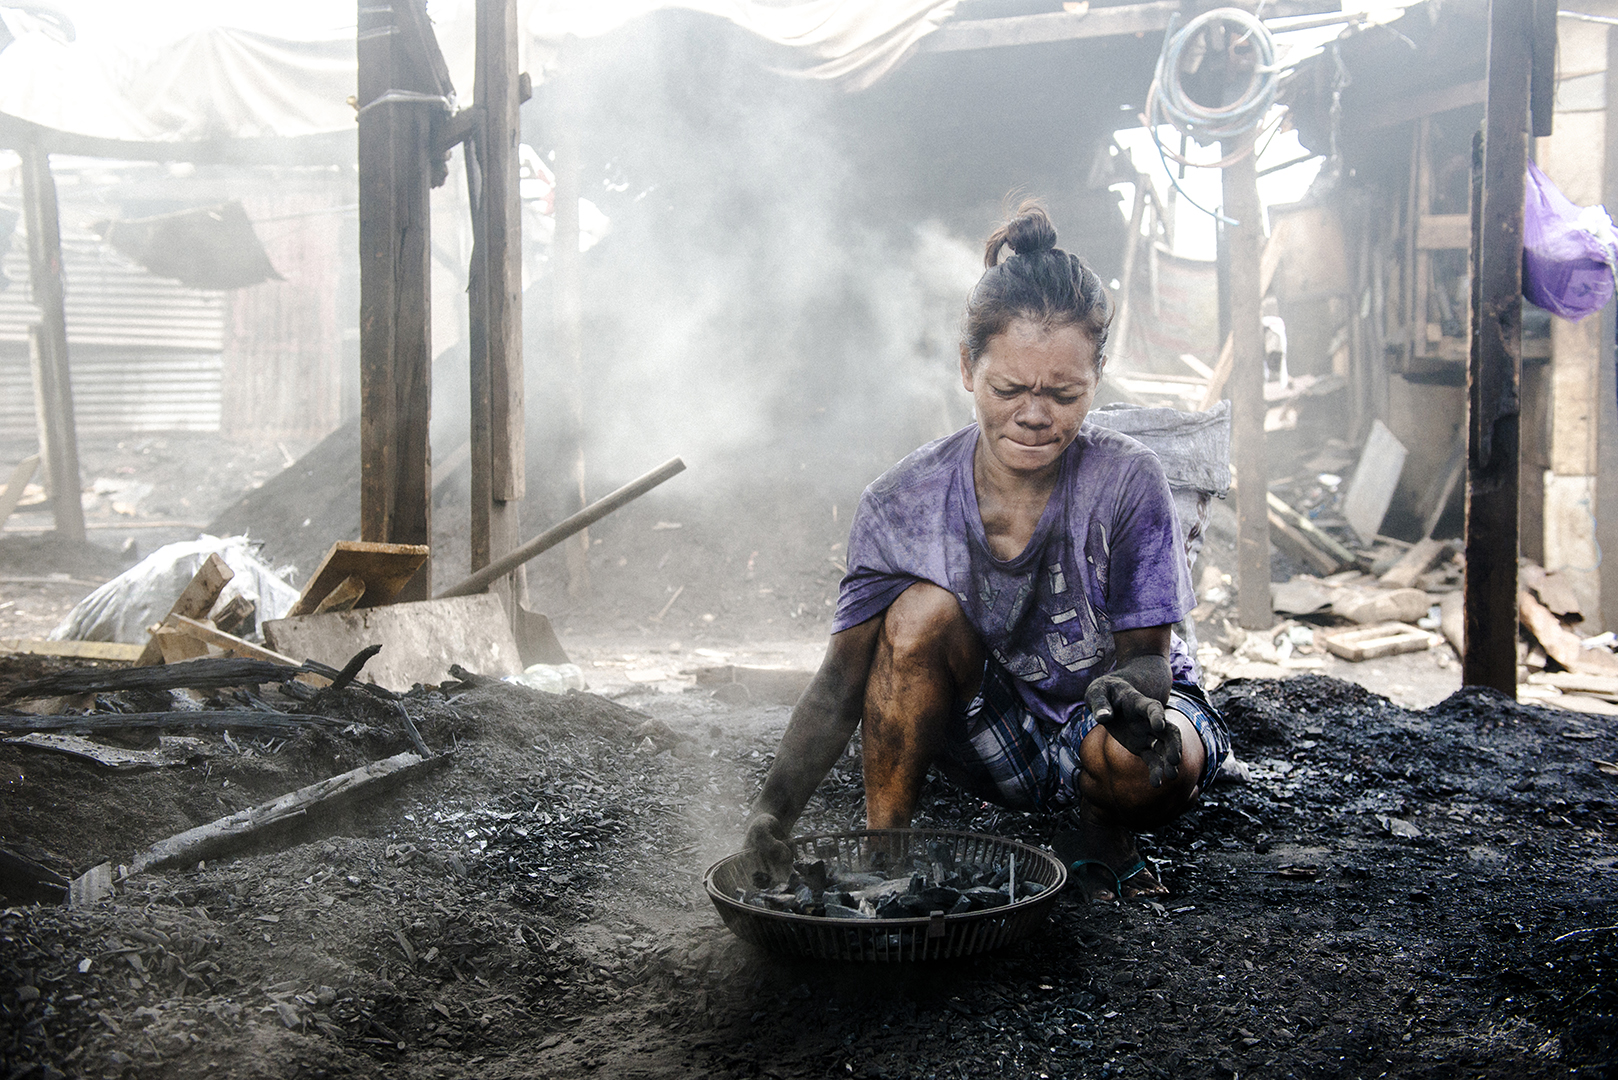 Christine (31) has 5 kids. She works in the charcoal production since 5 years to help her husband. Before she was staying at home. This time she helped to pack small pieces of call into the bags. It is for her the most difficult part, as she has to kneel all the time and sharp metal parts cut her hands. For five days of work she will earn 300 pesos. Malabon, Philippines, 2017